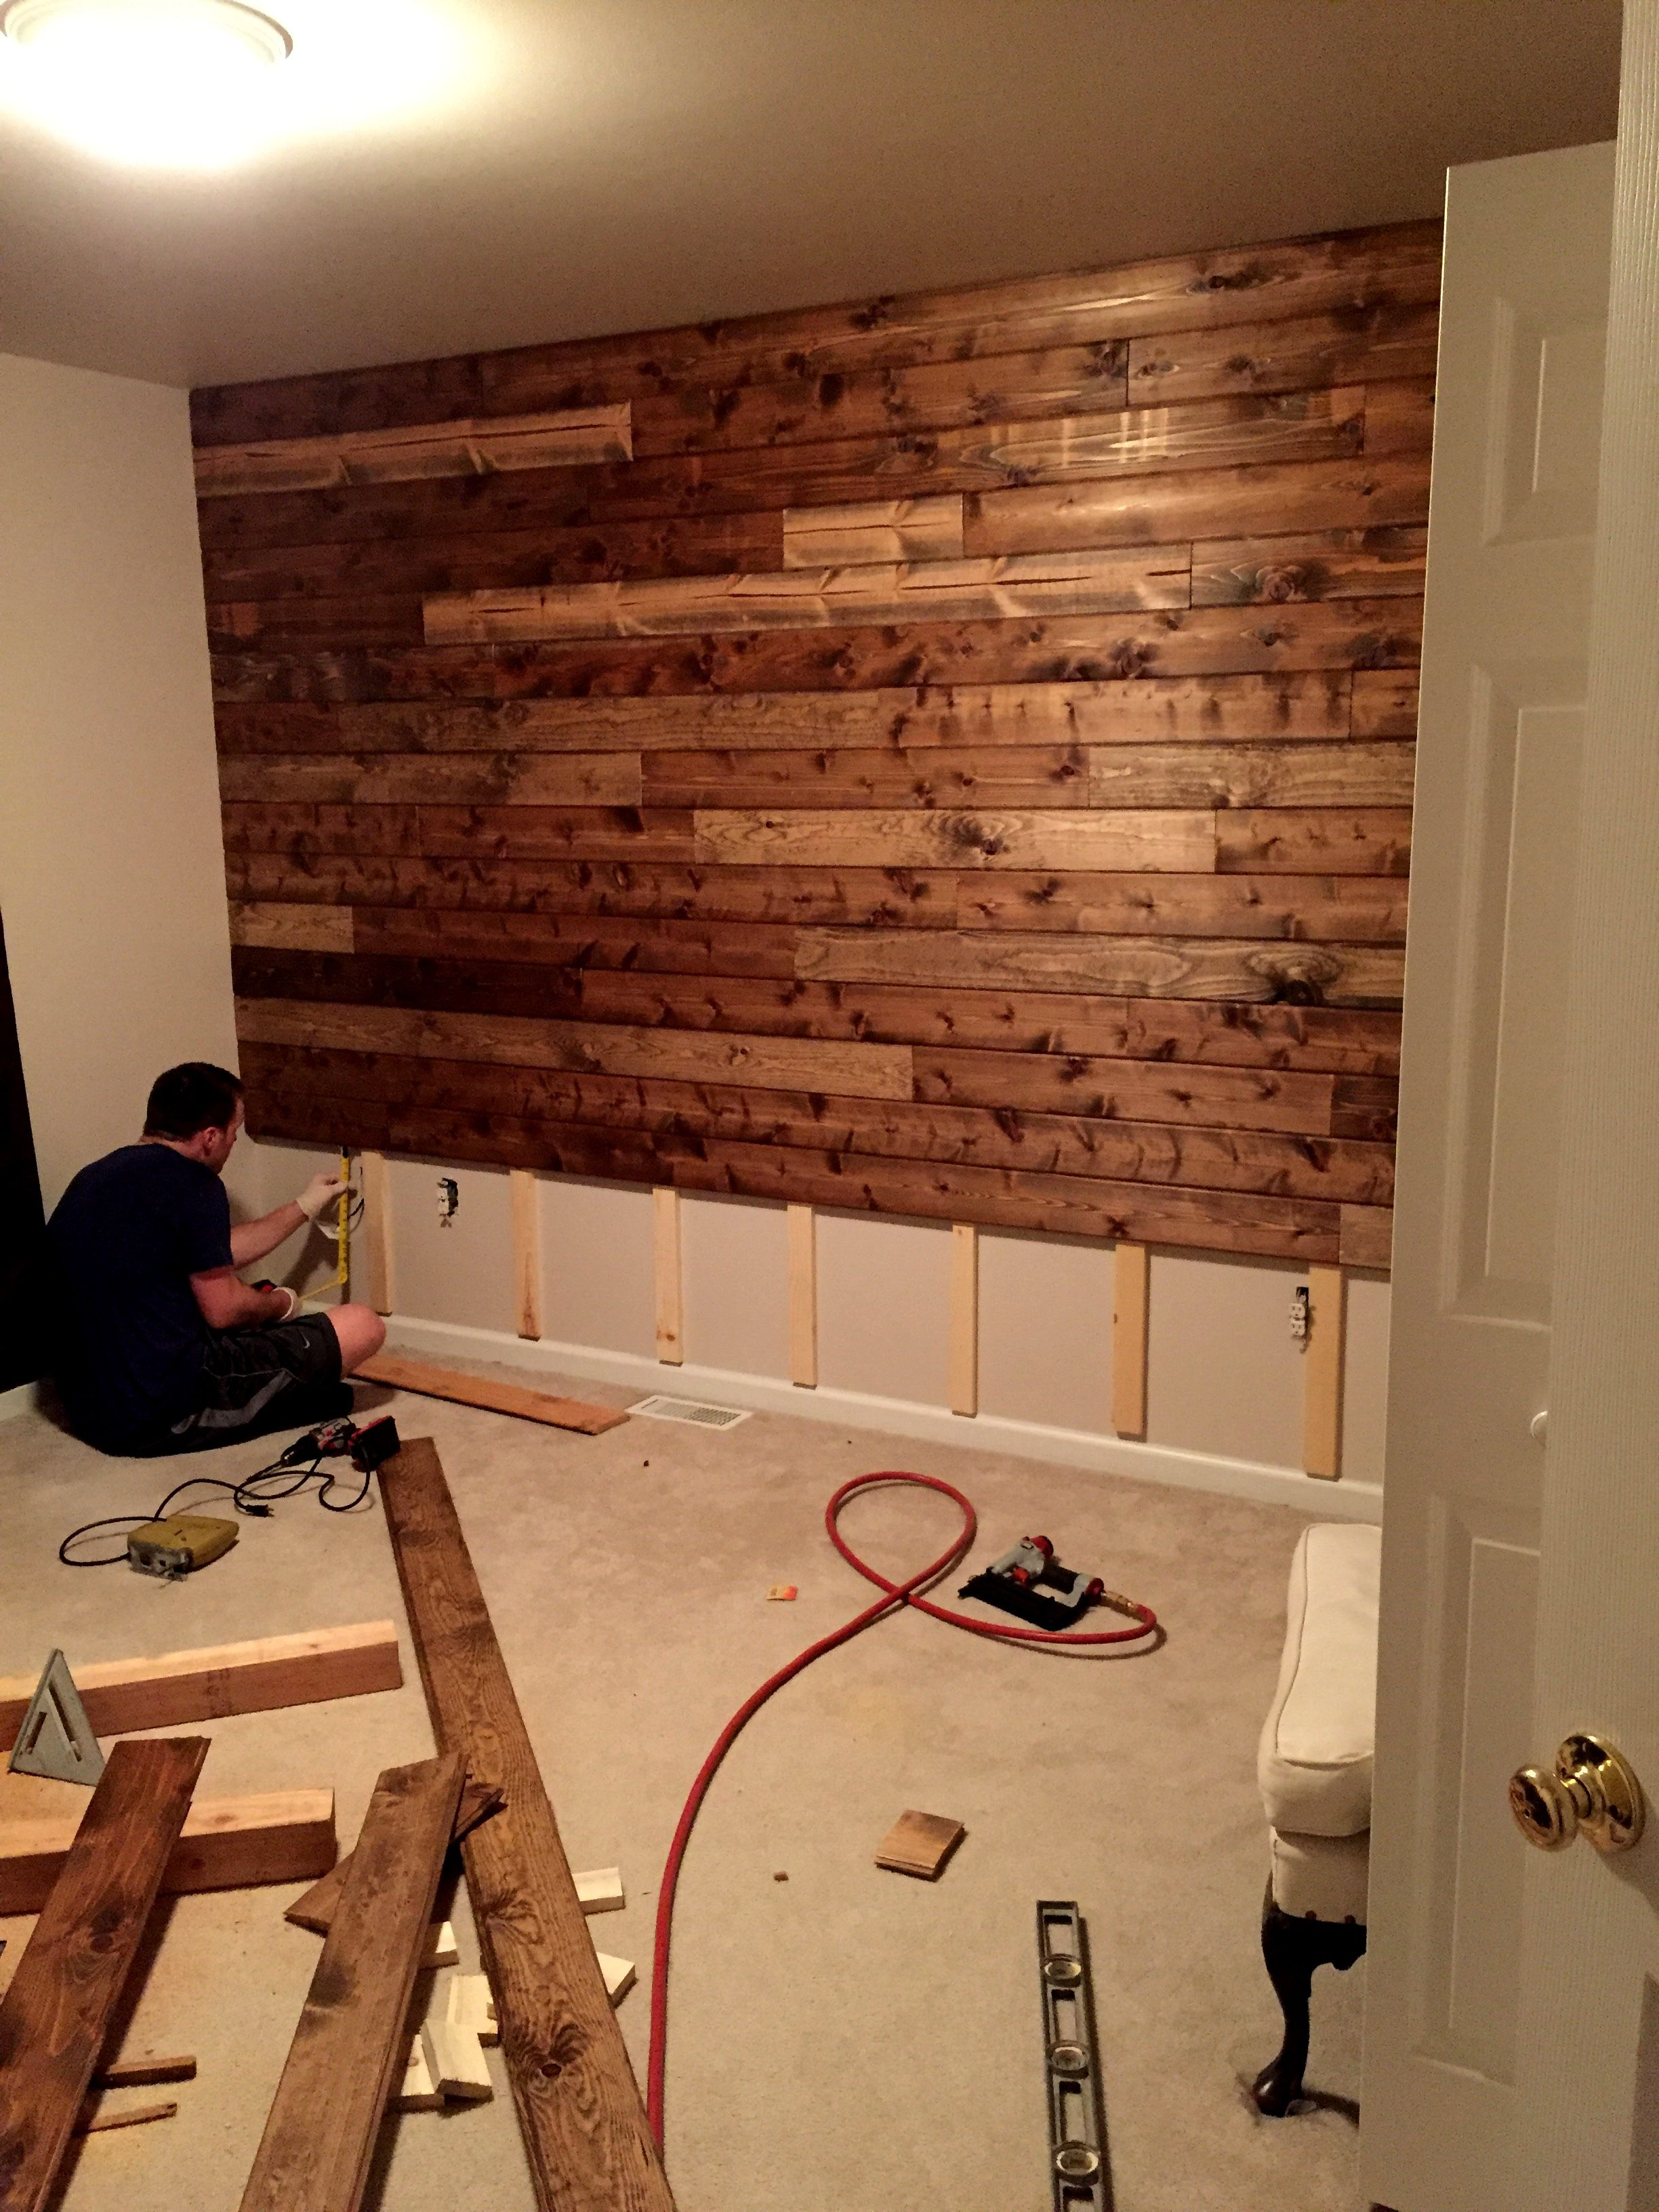 Great Go Through These DIY Accent Wall Ideas If You Are Soon Planning On Painting  Accent Walls In Your Home. If Adding An Accent Wall Wood To Your Living  Room, ...